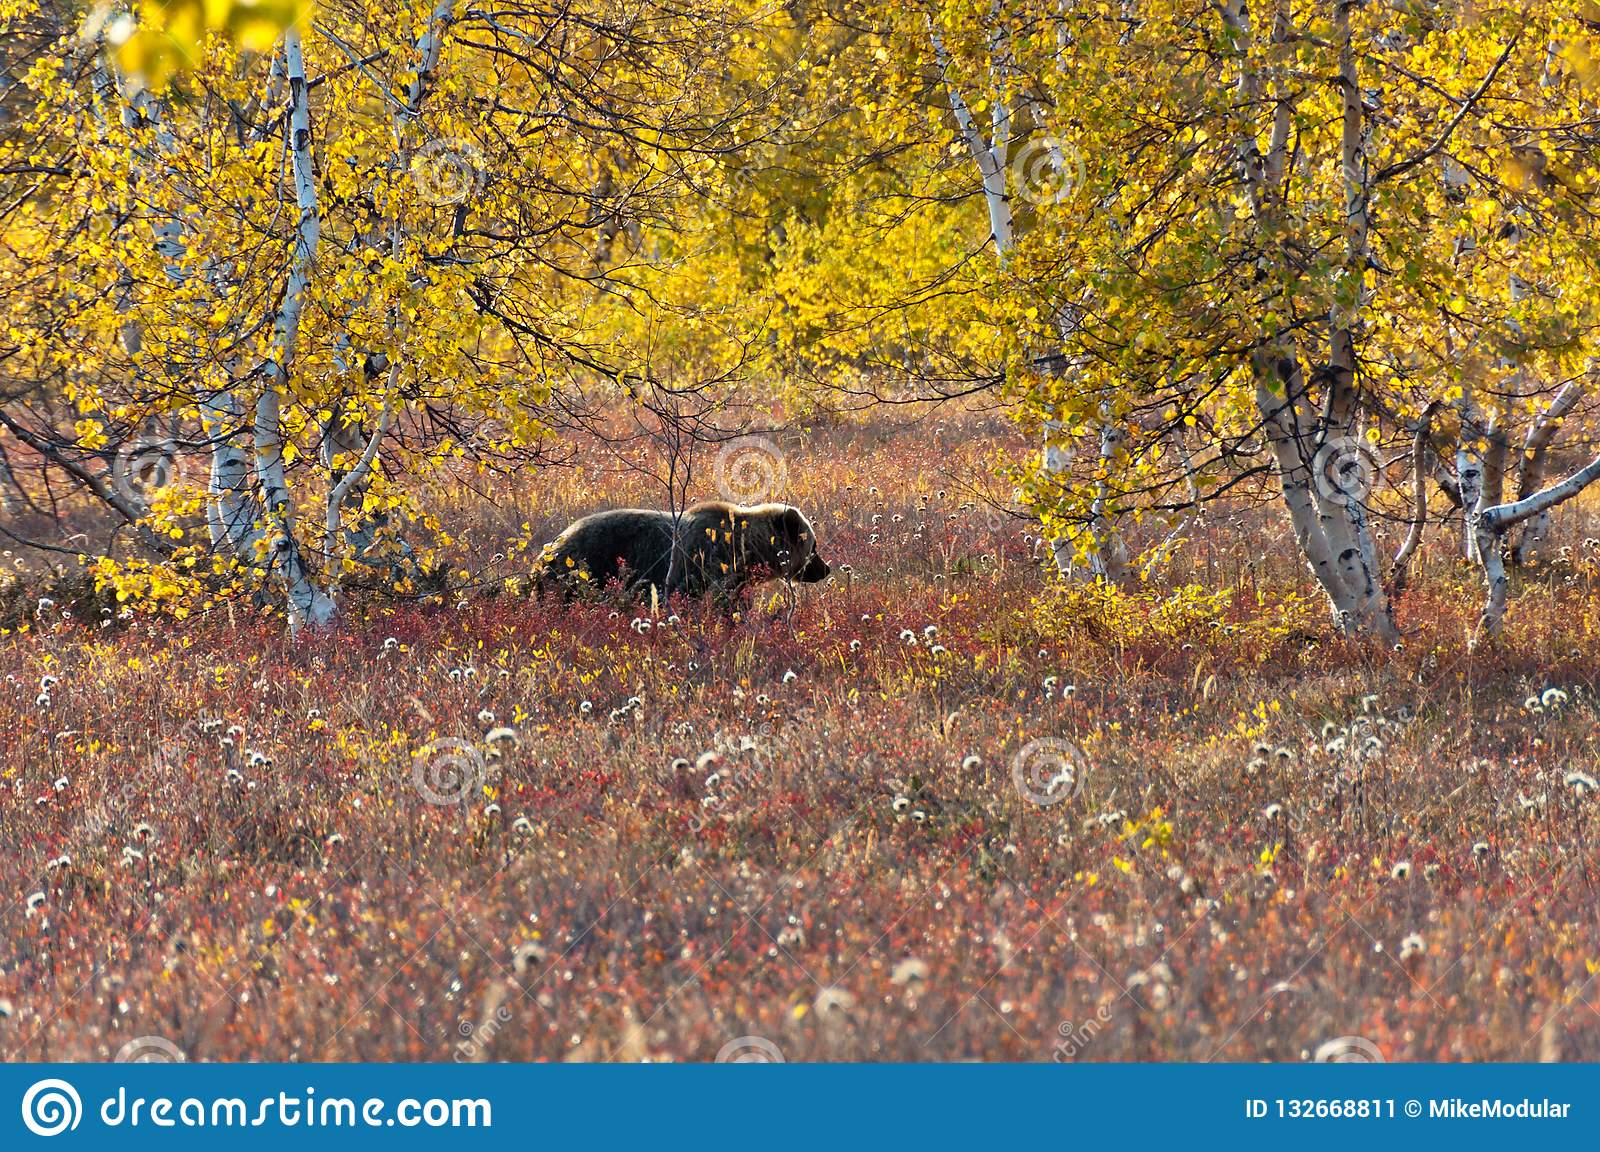 A brown bear in the autumn meadow